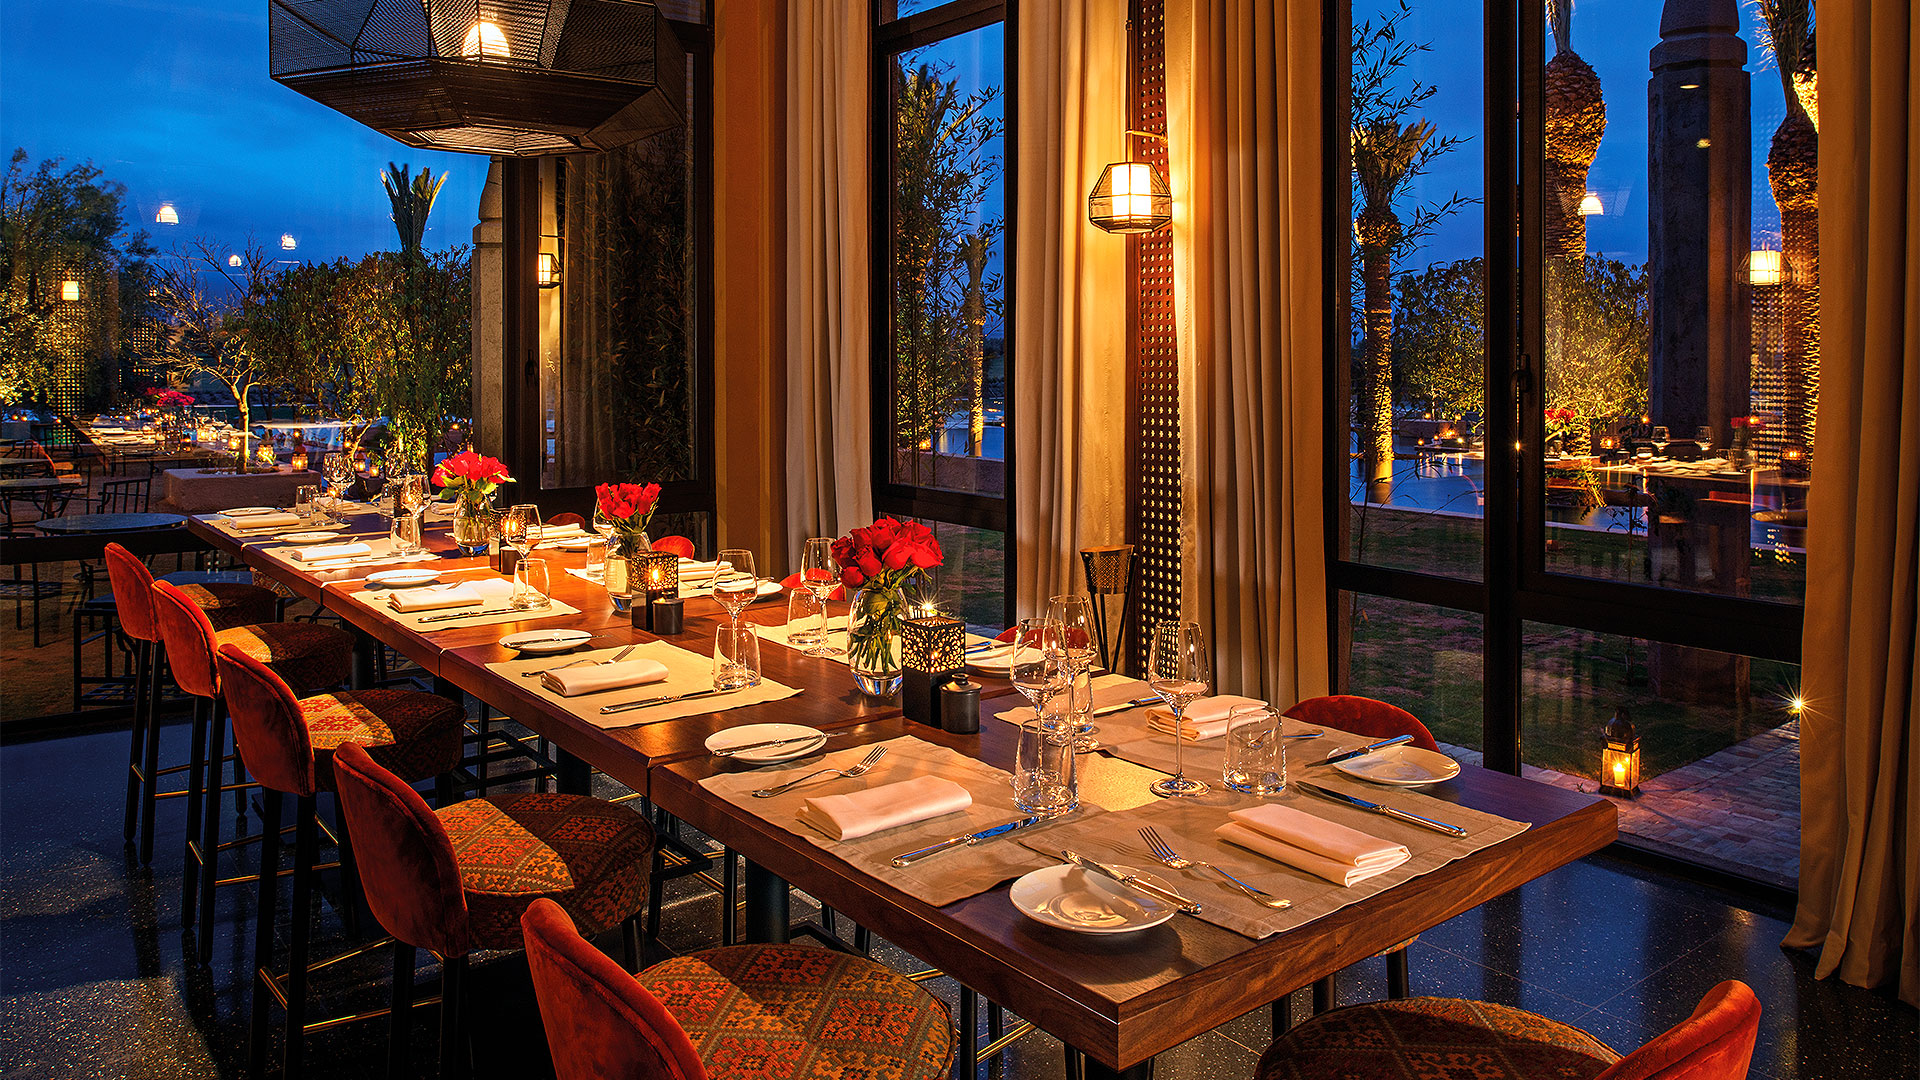 Banquets - Restaurants - Dining - Royal Palm Marrakech